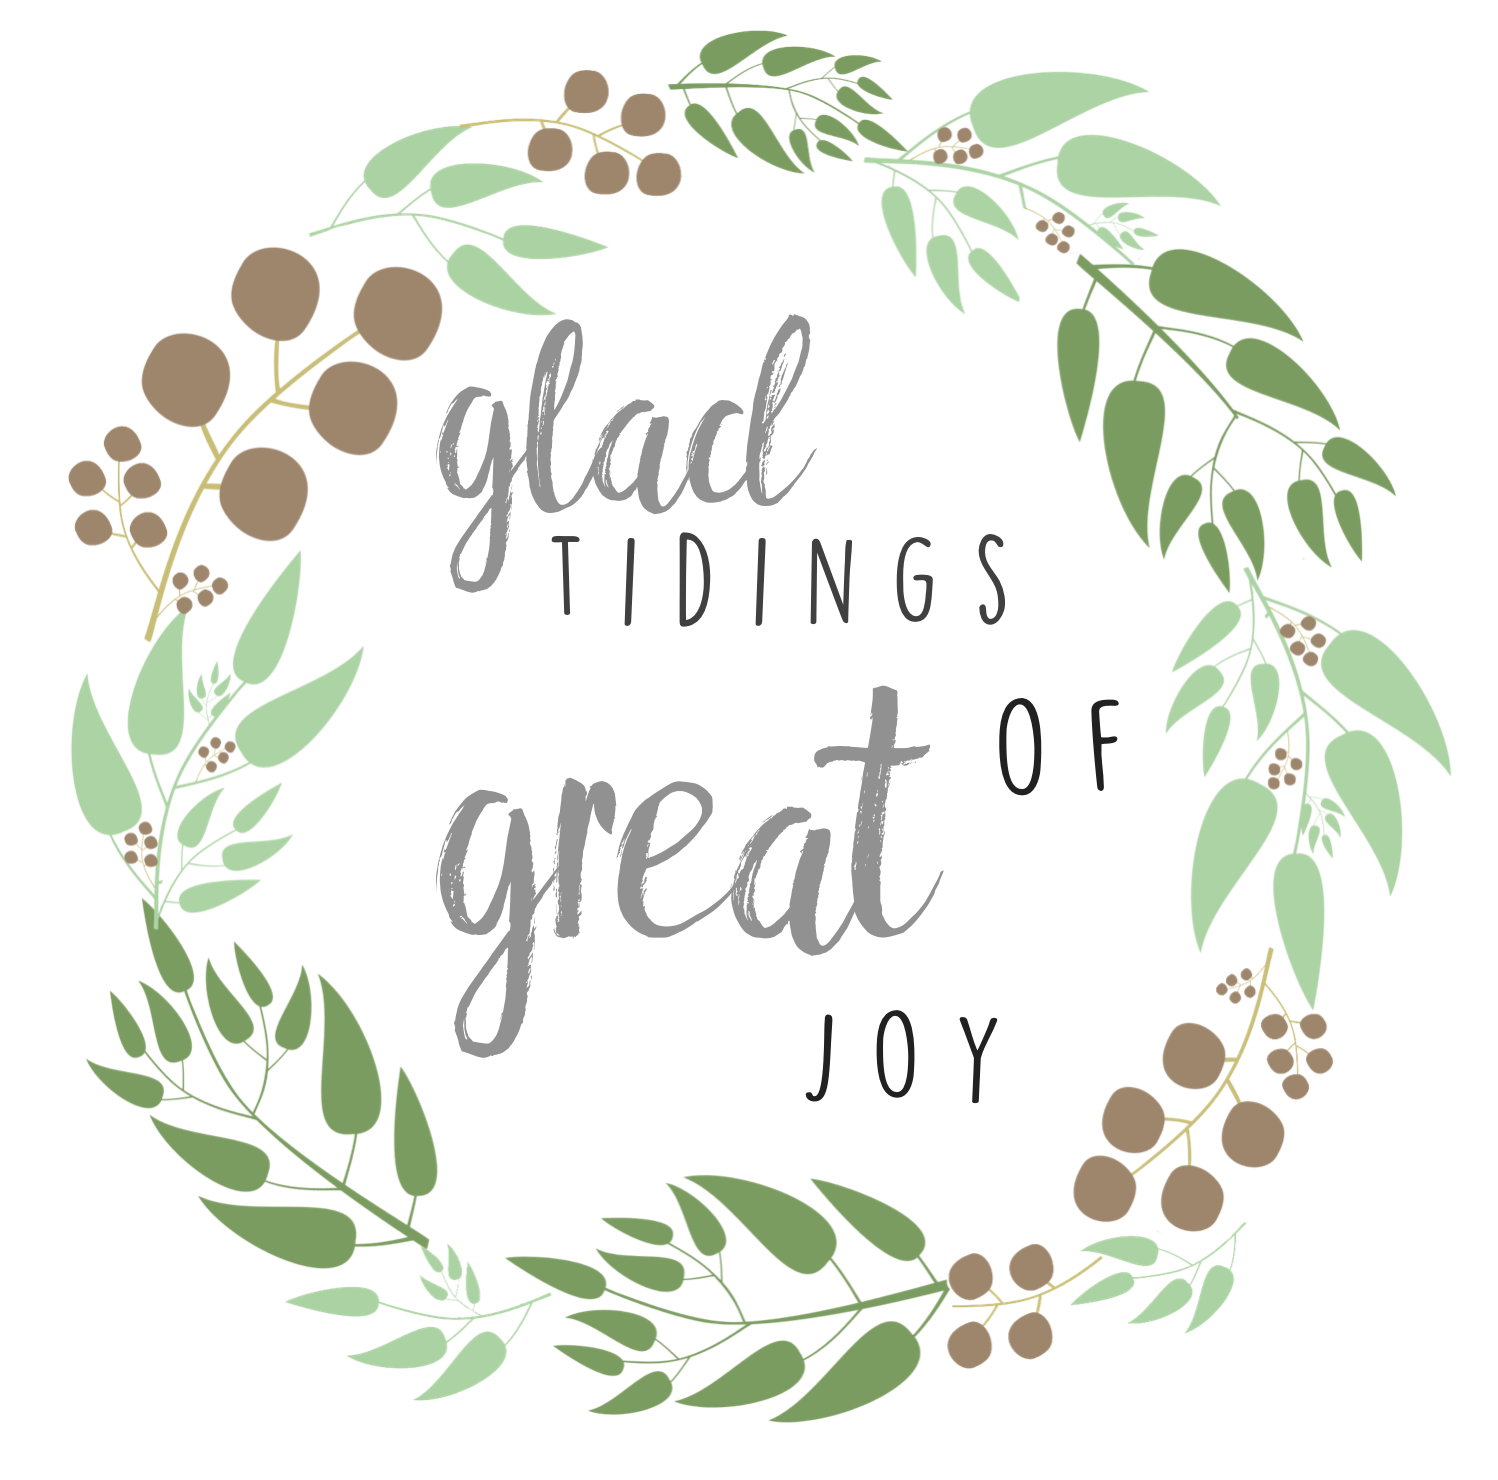 Glad tidings of great joy // Free Printable // via @ahopefulhood